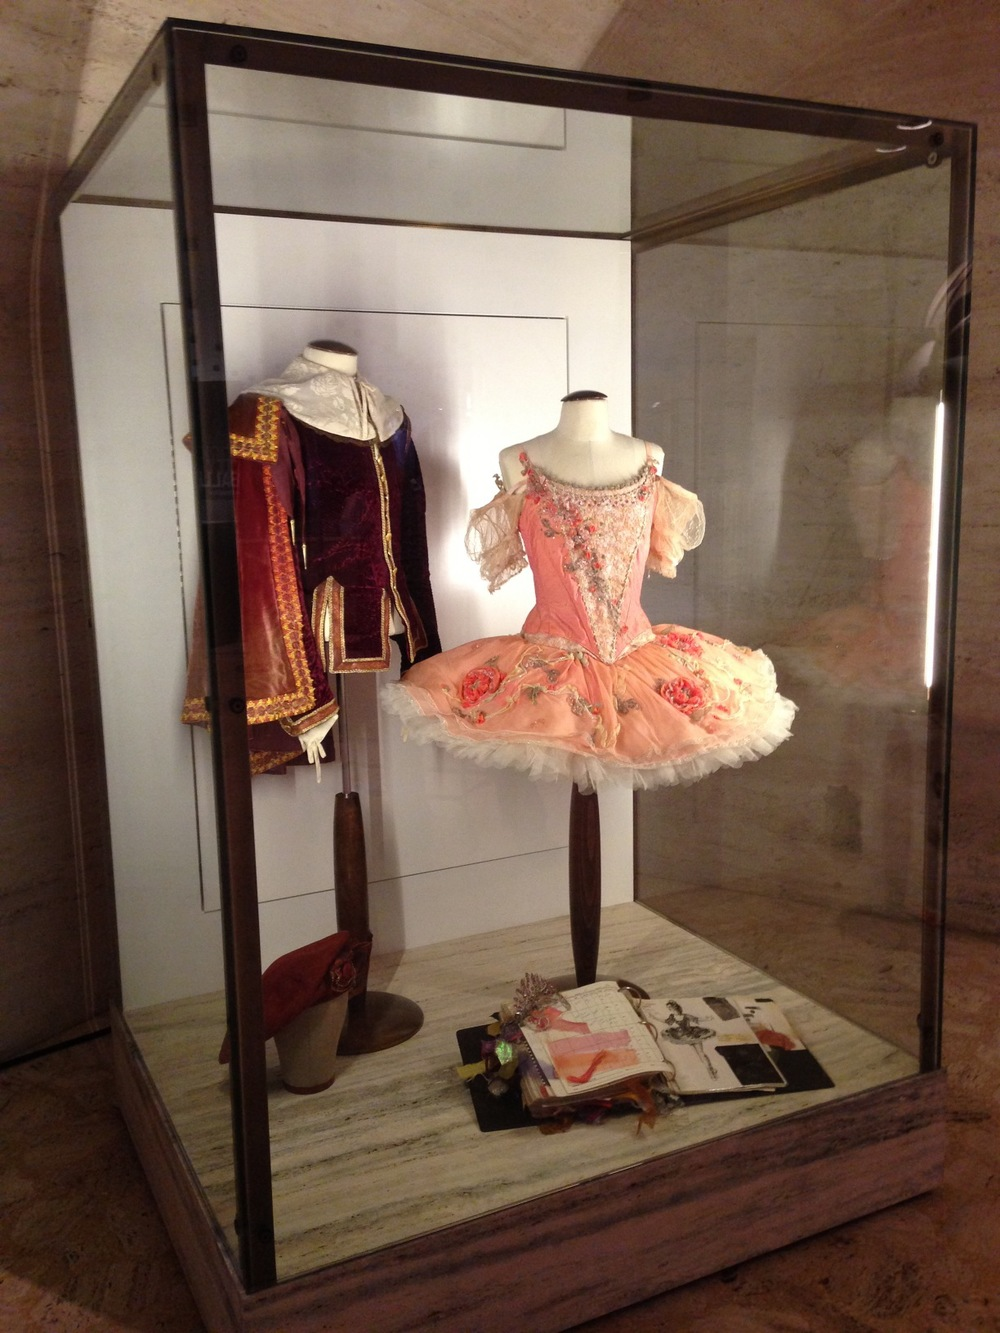 Display cases in the Koch Theatre at Lincoln Center- Assisting with the commissioning of the custom-designed cases as well as the rotating displays were one aspect of Tracey's role as the assistant to the costume director.